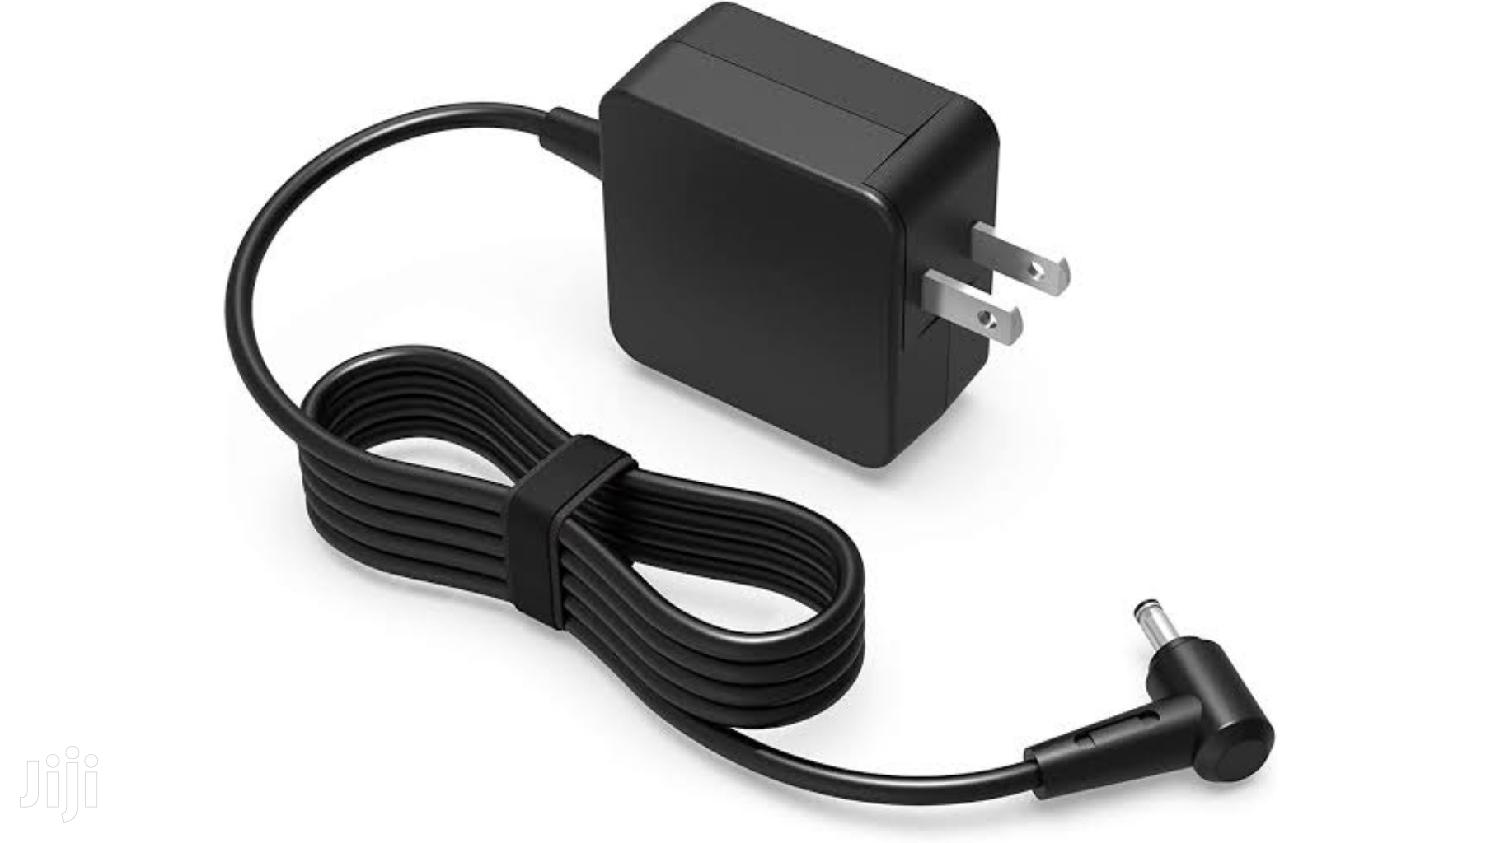 Asus Charger/Laptop Charger/Laptop Adaptor